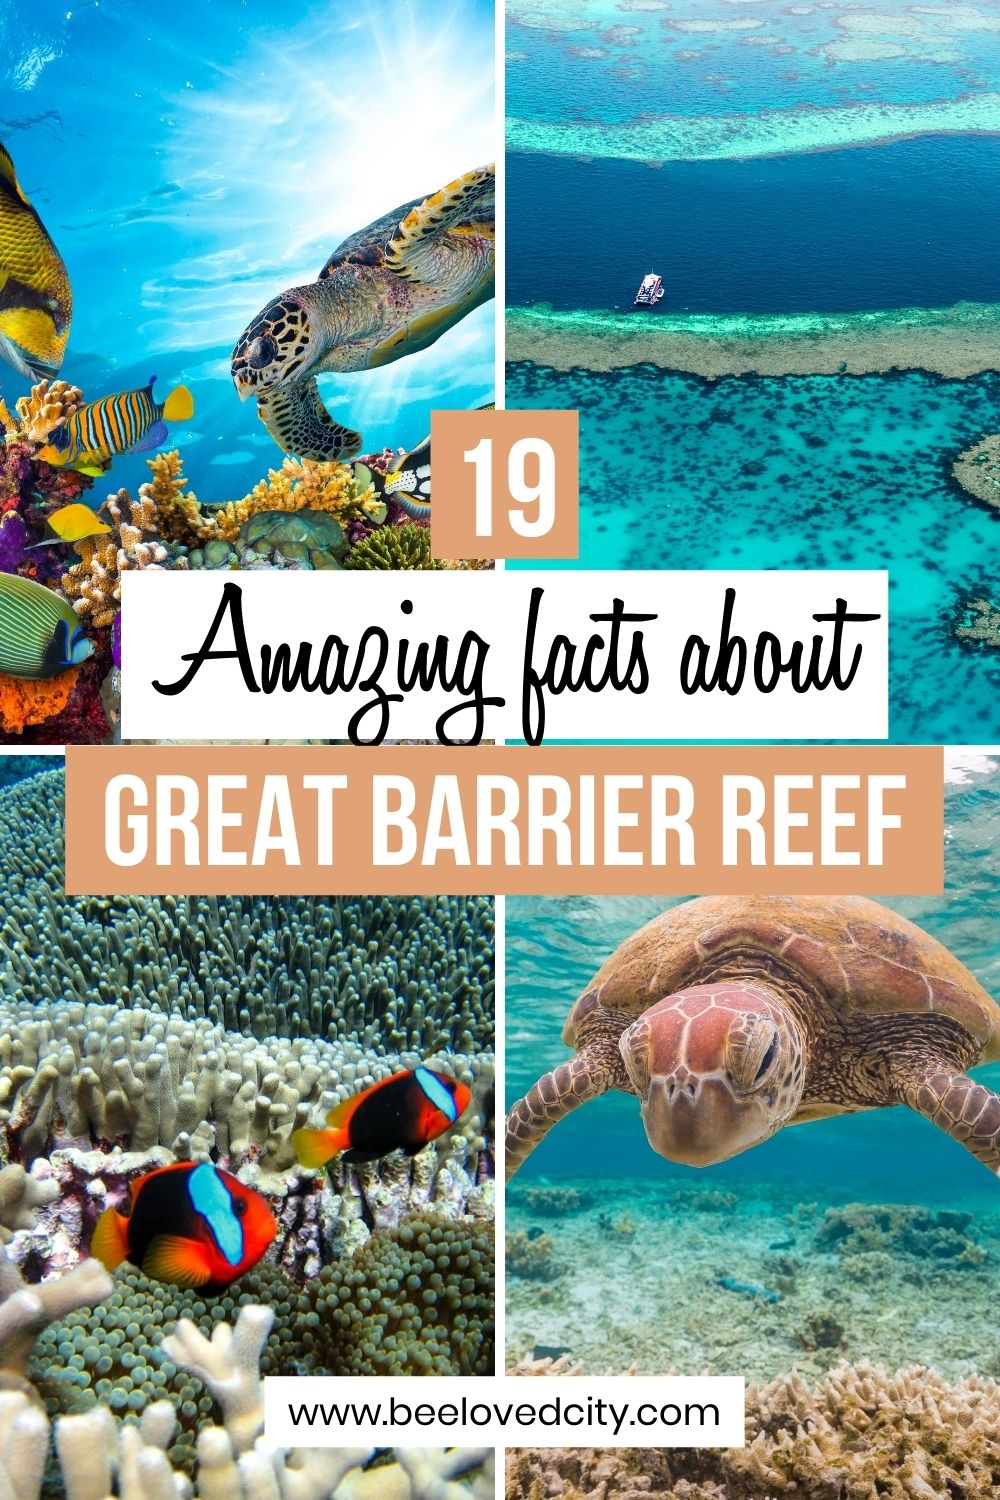 fun facts about Great Barrier Reef